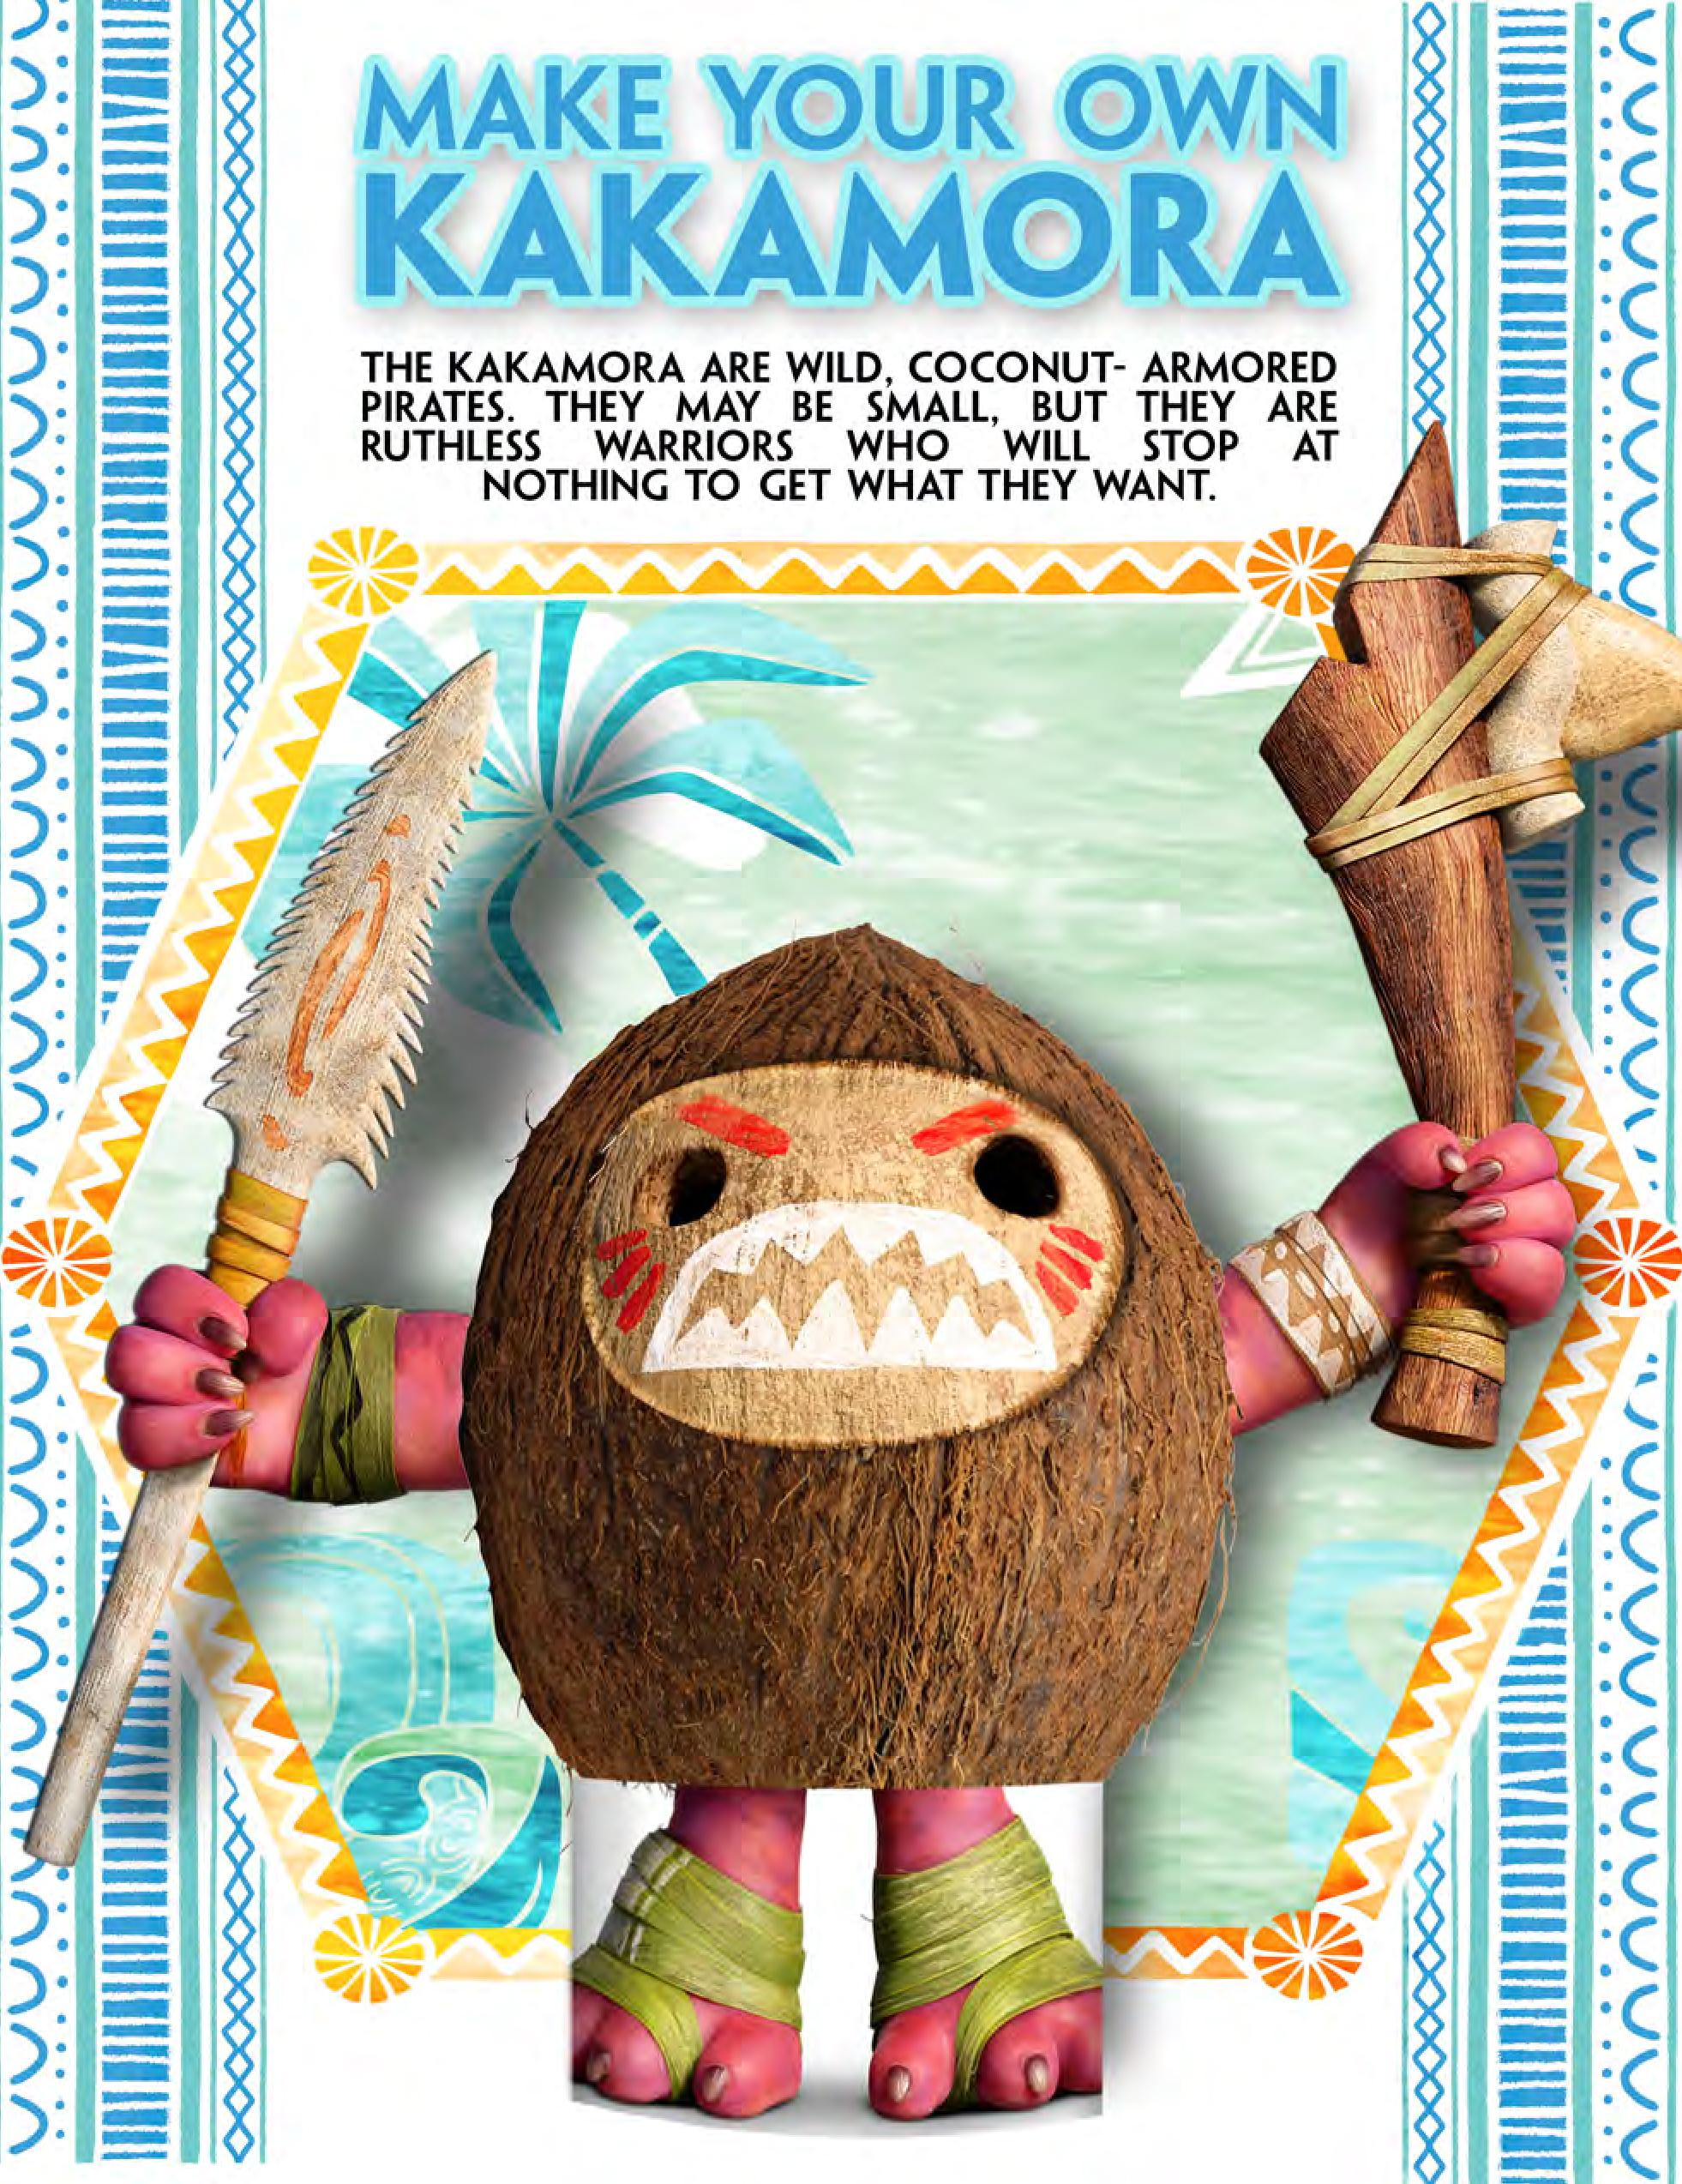 Make Your Own Crazy, Coconut-Armored Kakamora Pirate from The Review Wire